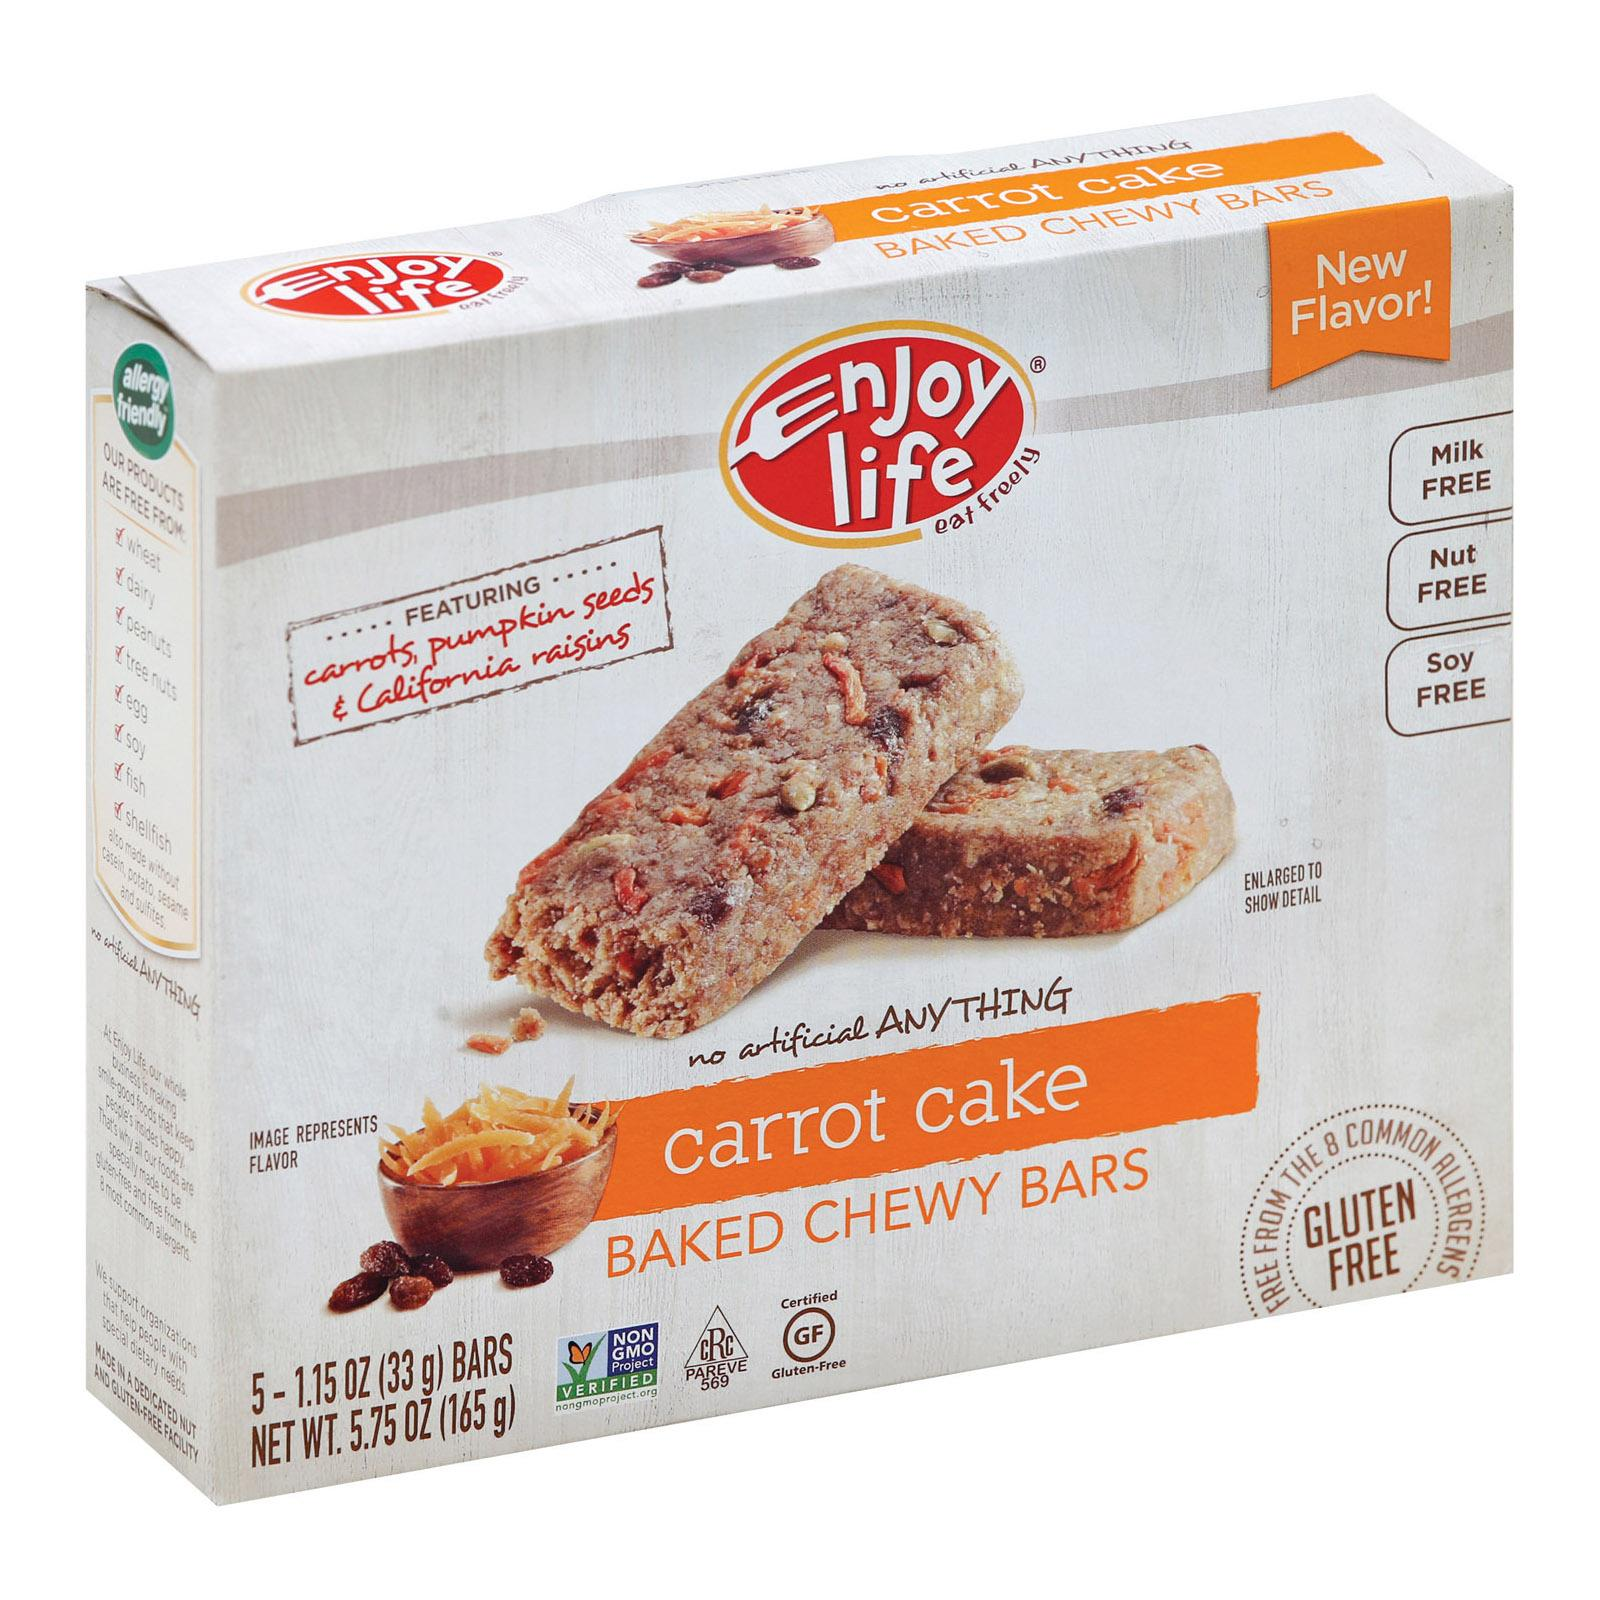 Enjoy Life Carrot Cake Snack Bar